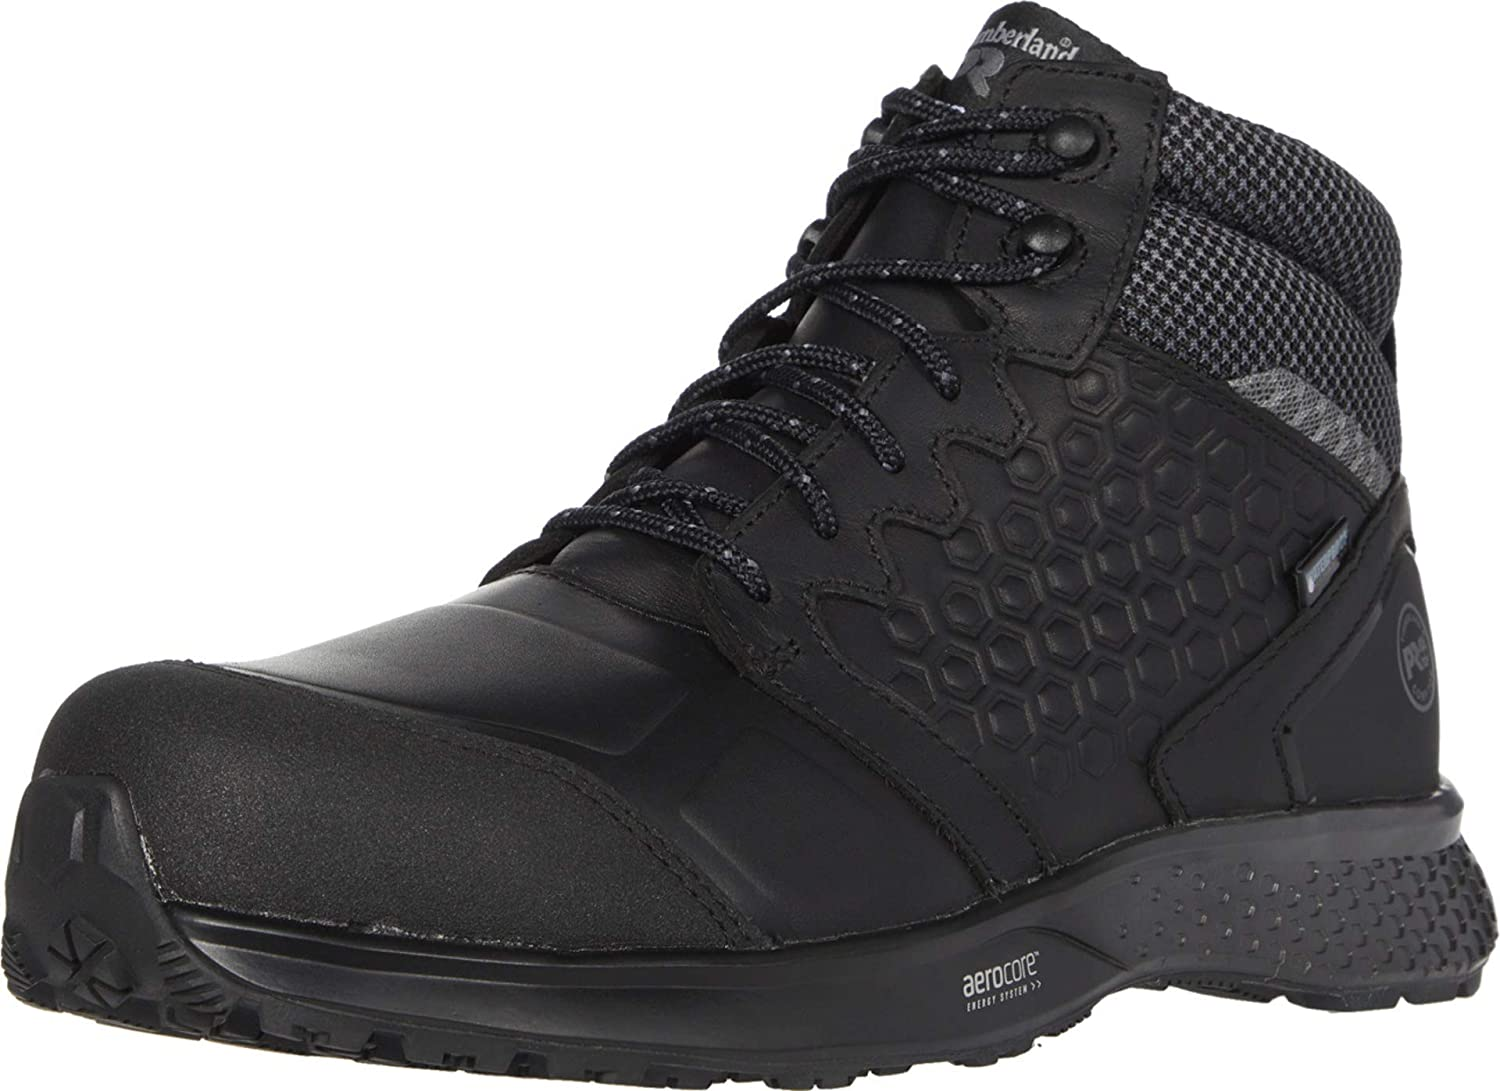 Timberland PRO Men's Mid Reaxion Athletic Hiker Wateproof Composite Toe Work Boot, Black/Grey, 12 Wide